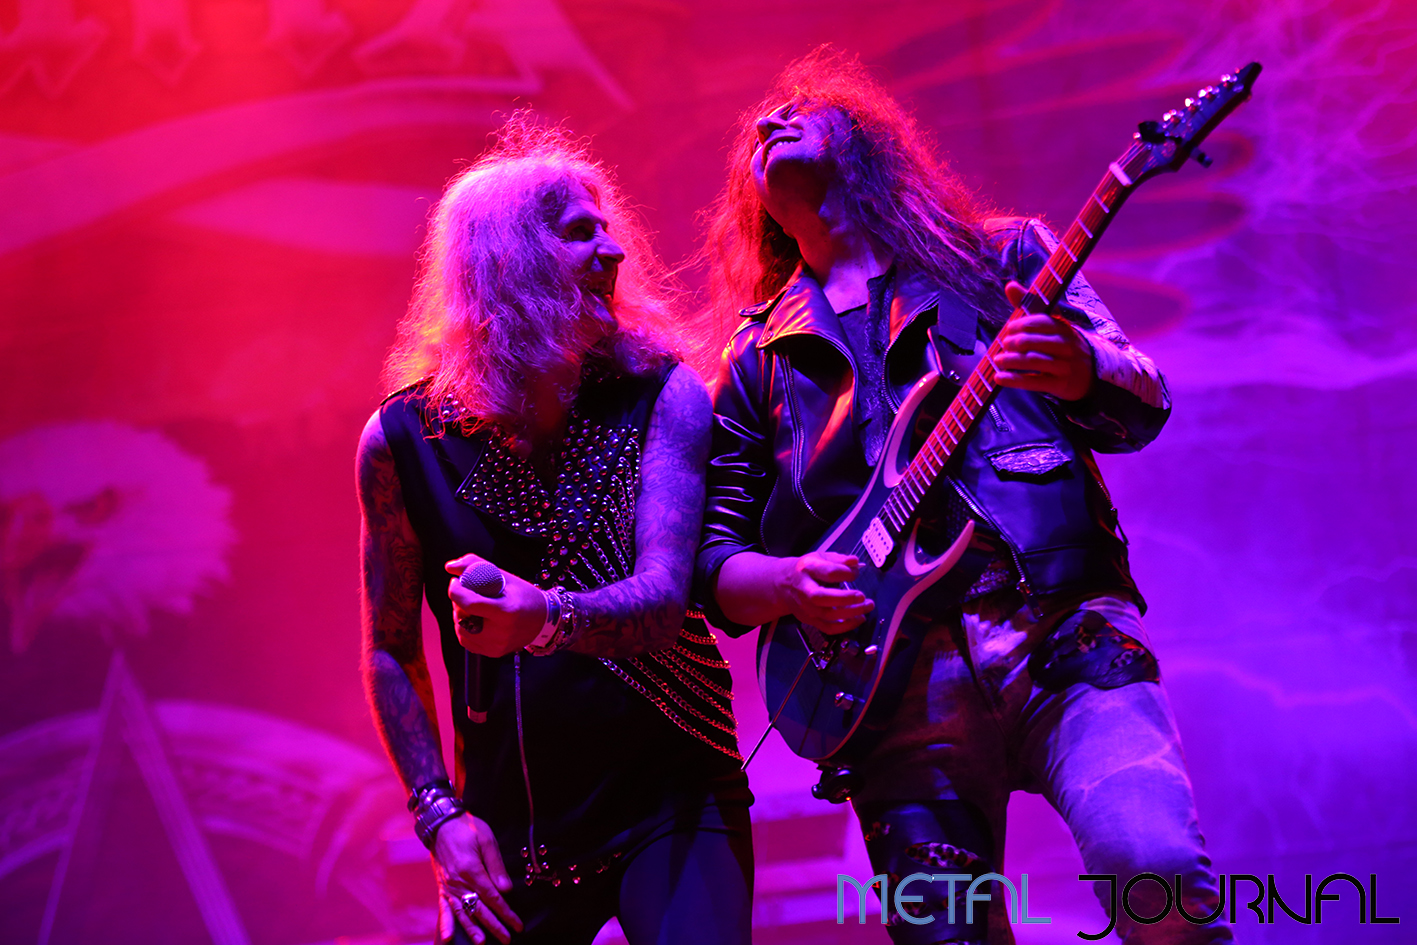 lujuria - leyendas del rock 2019 metal journal pic 2